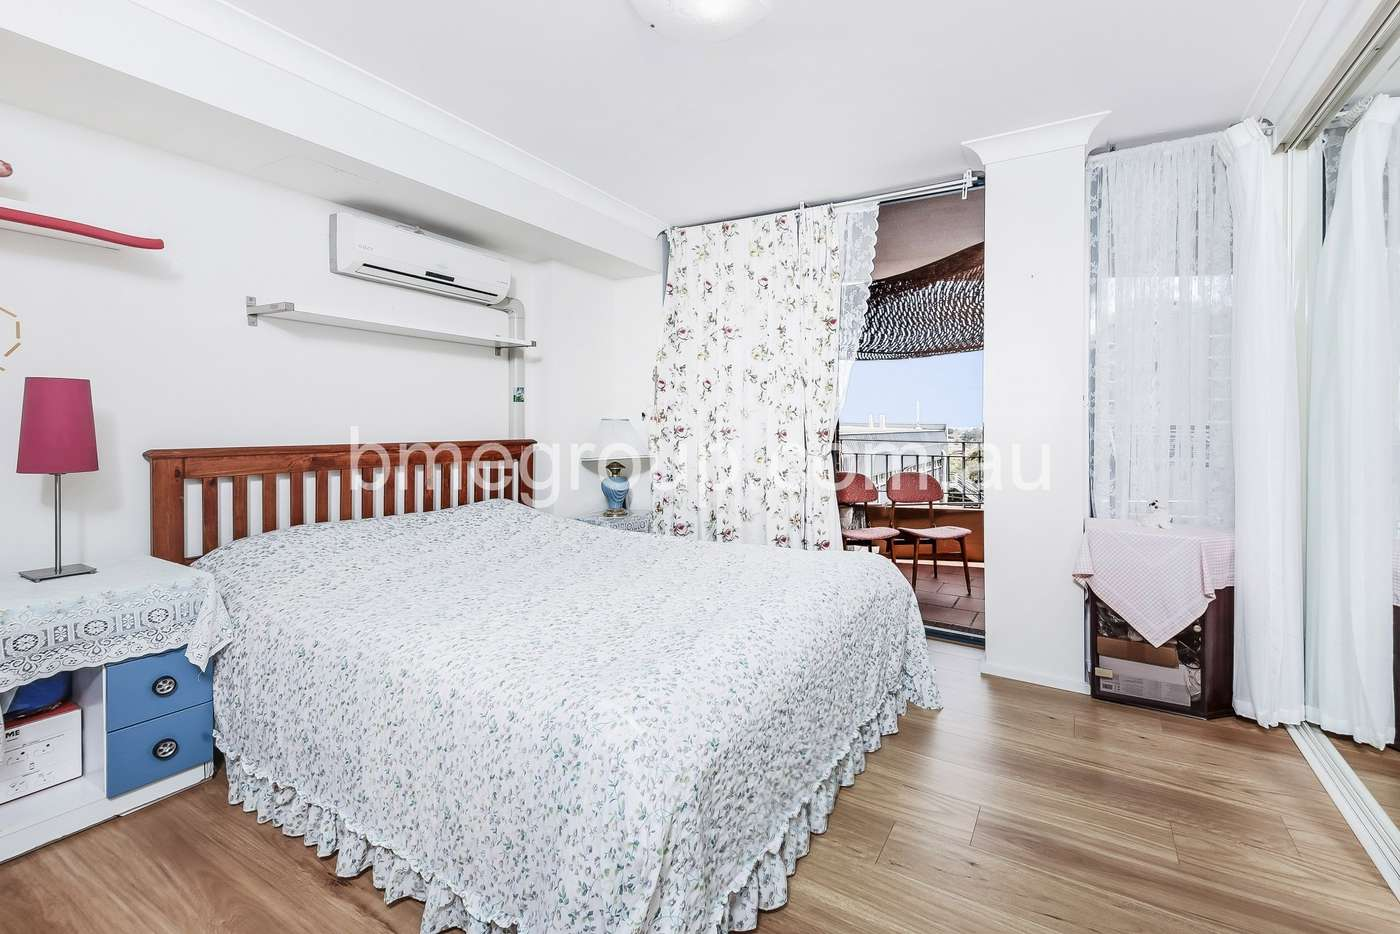 Fifth view of Homely apartment listing, Unit 41/2-8 Bridge St, Hurstville NSW 2220